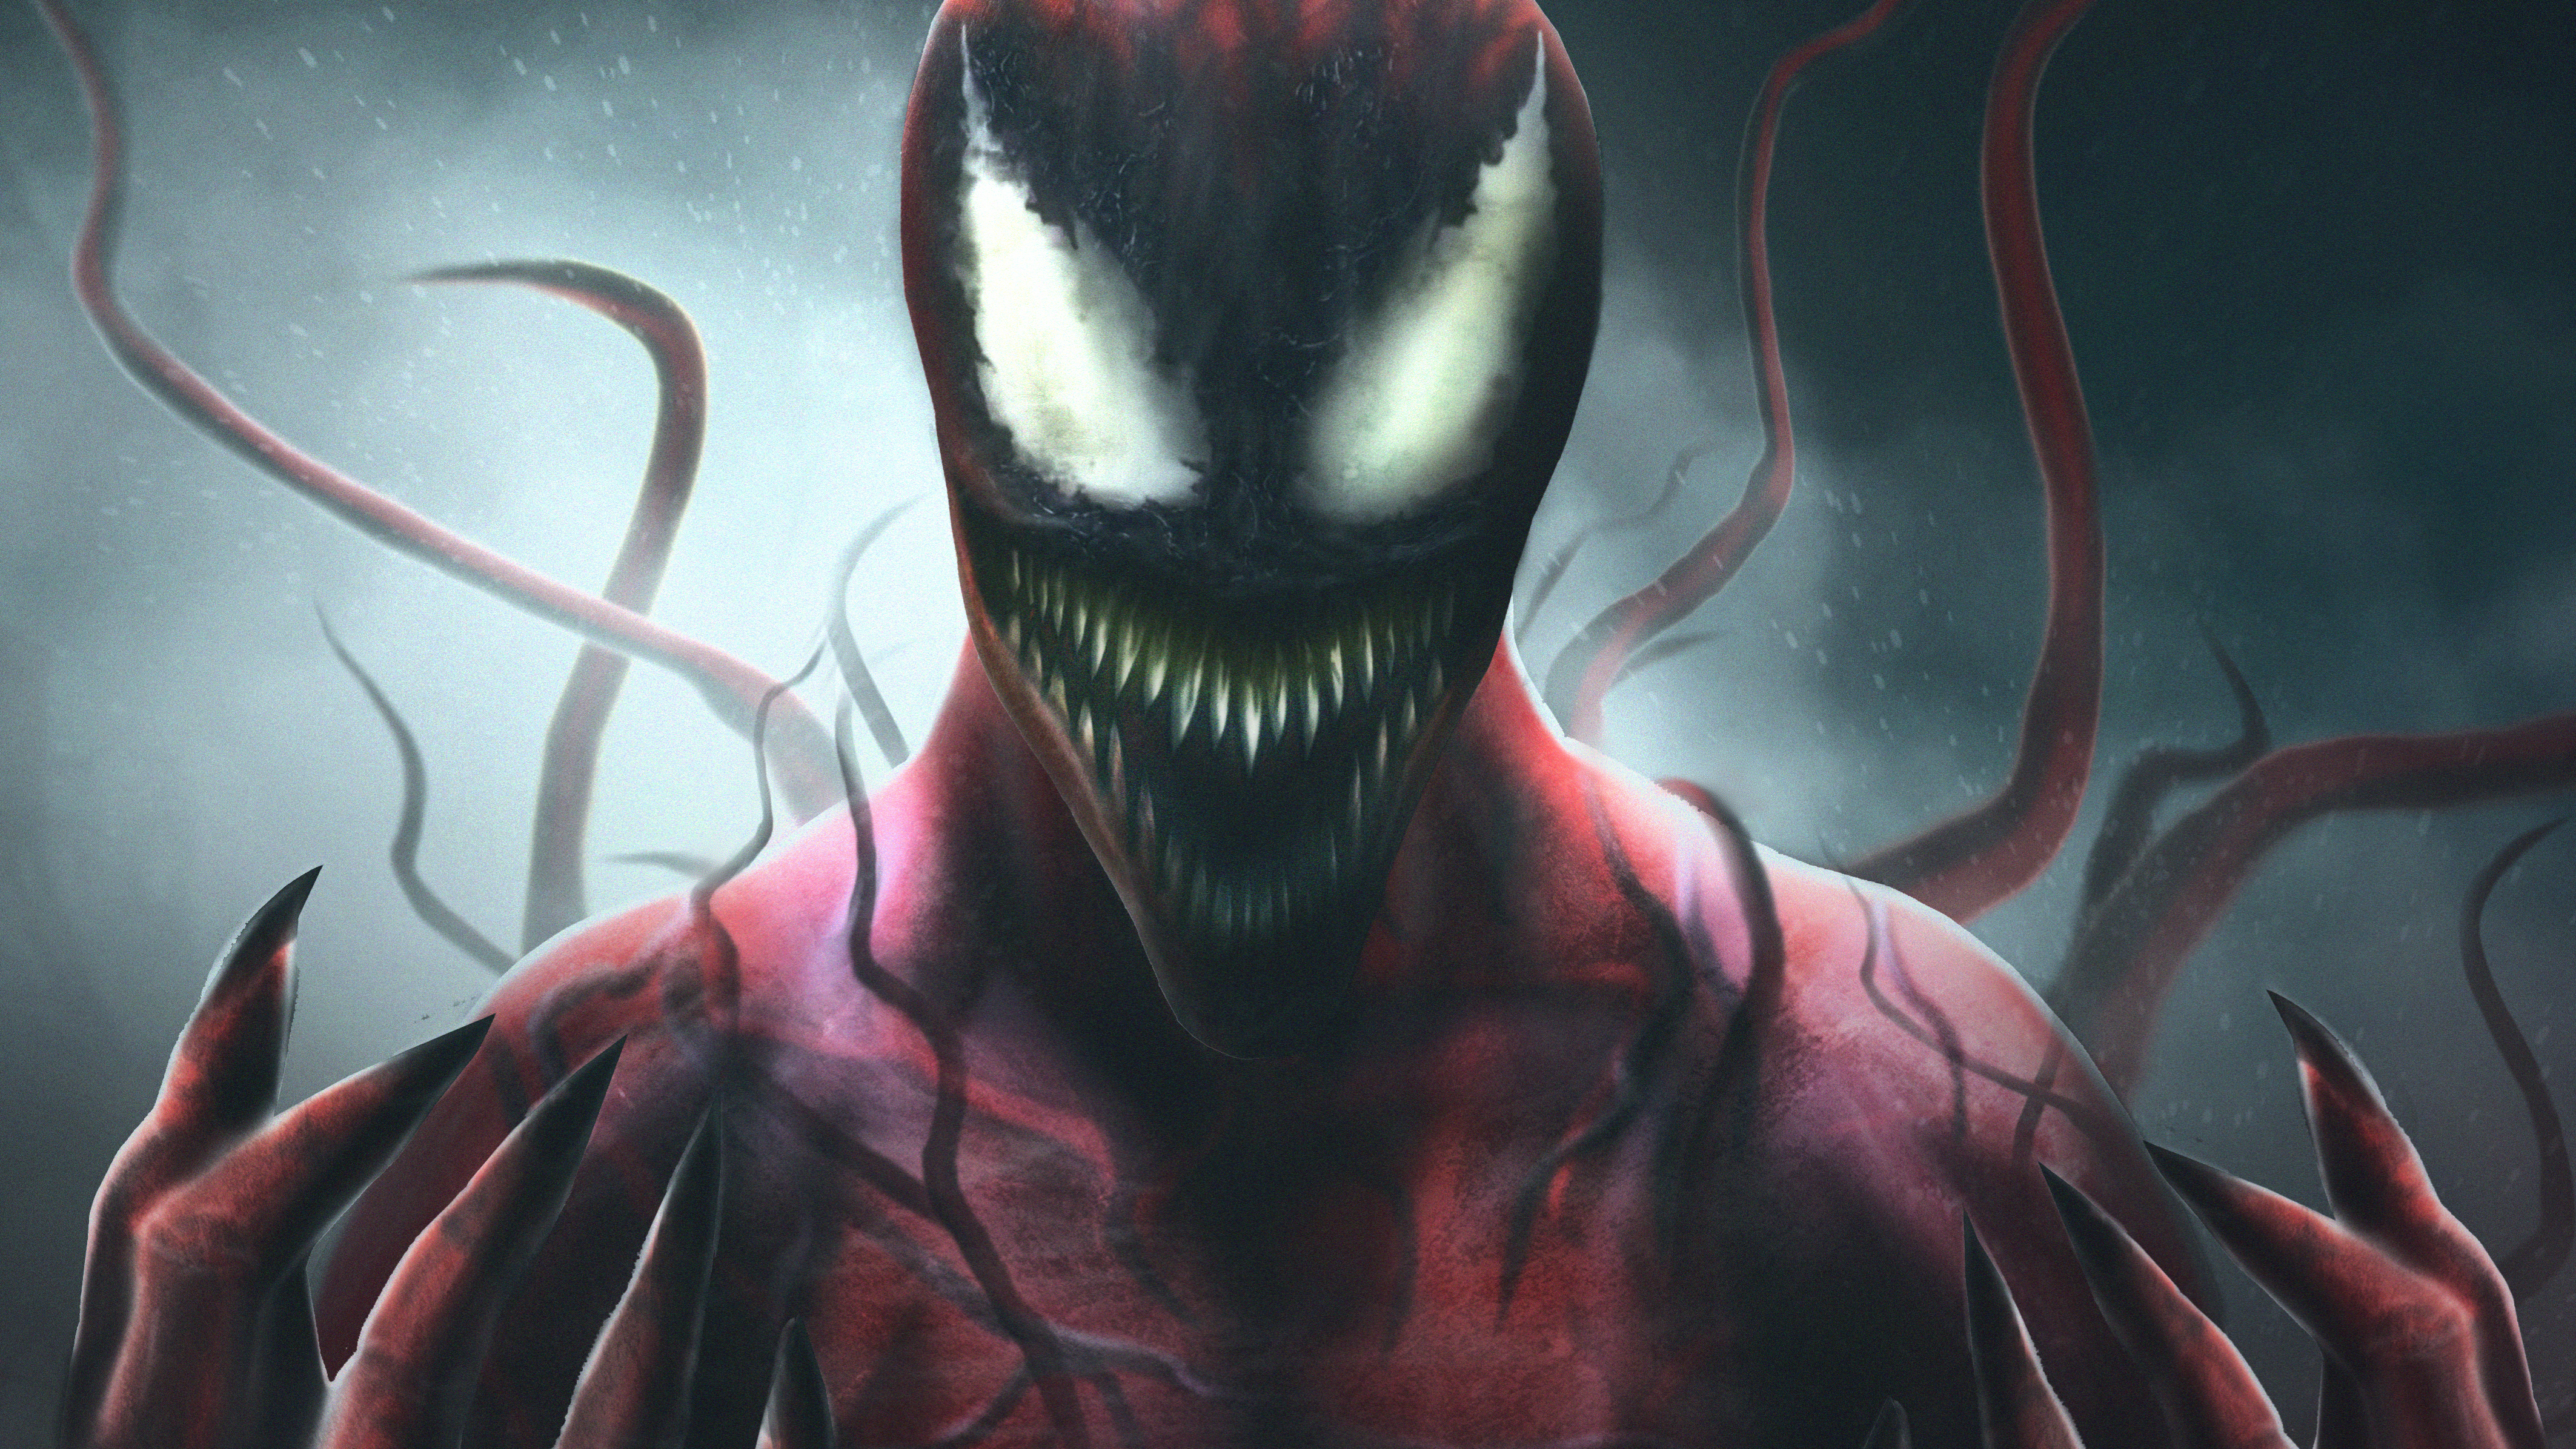 Carnage Marvel Supervillain 4K Wallpapers | HD Wallpapers